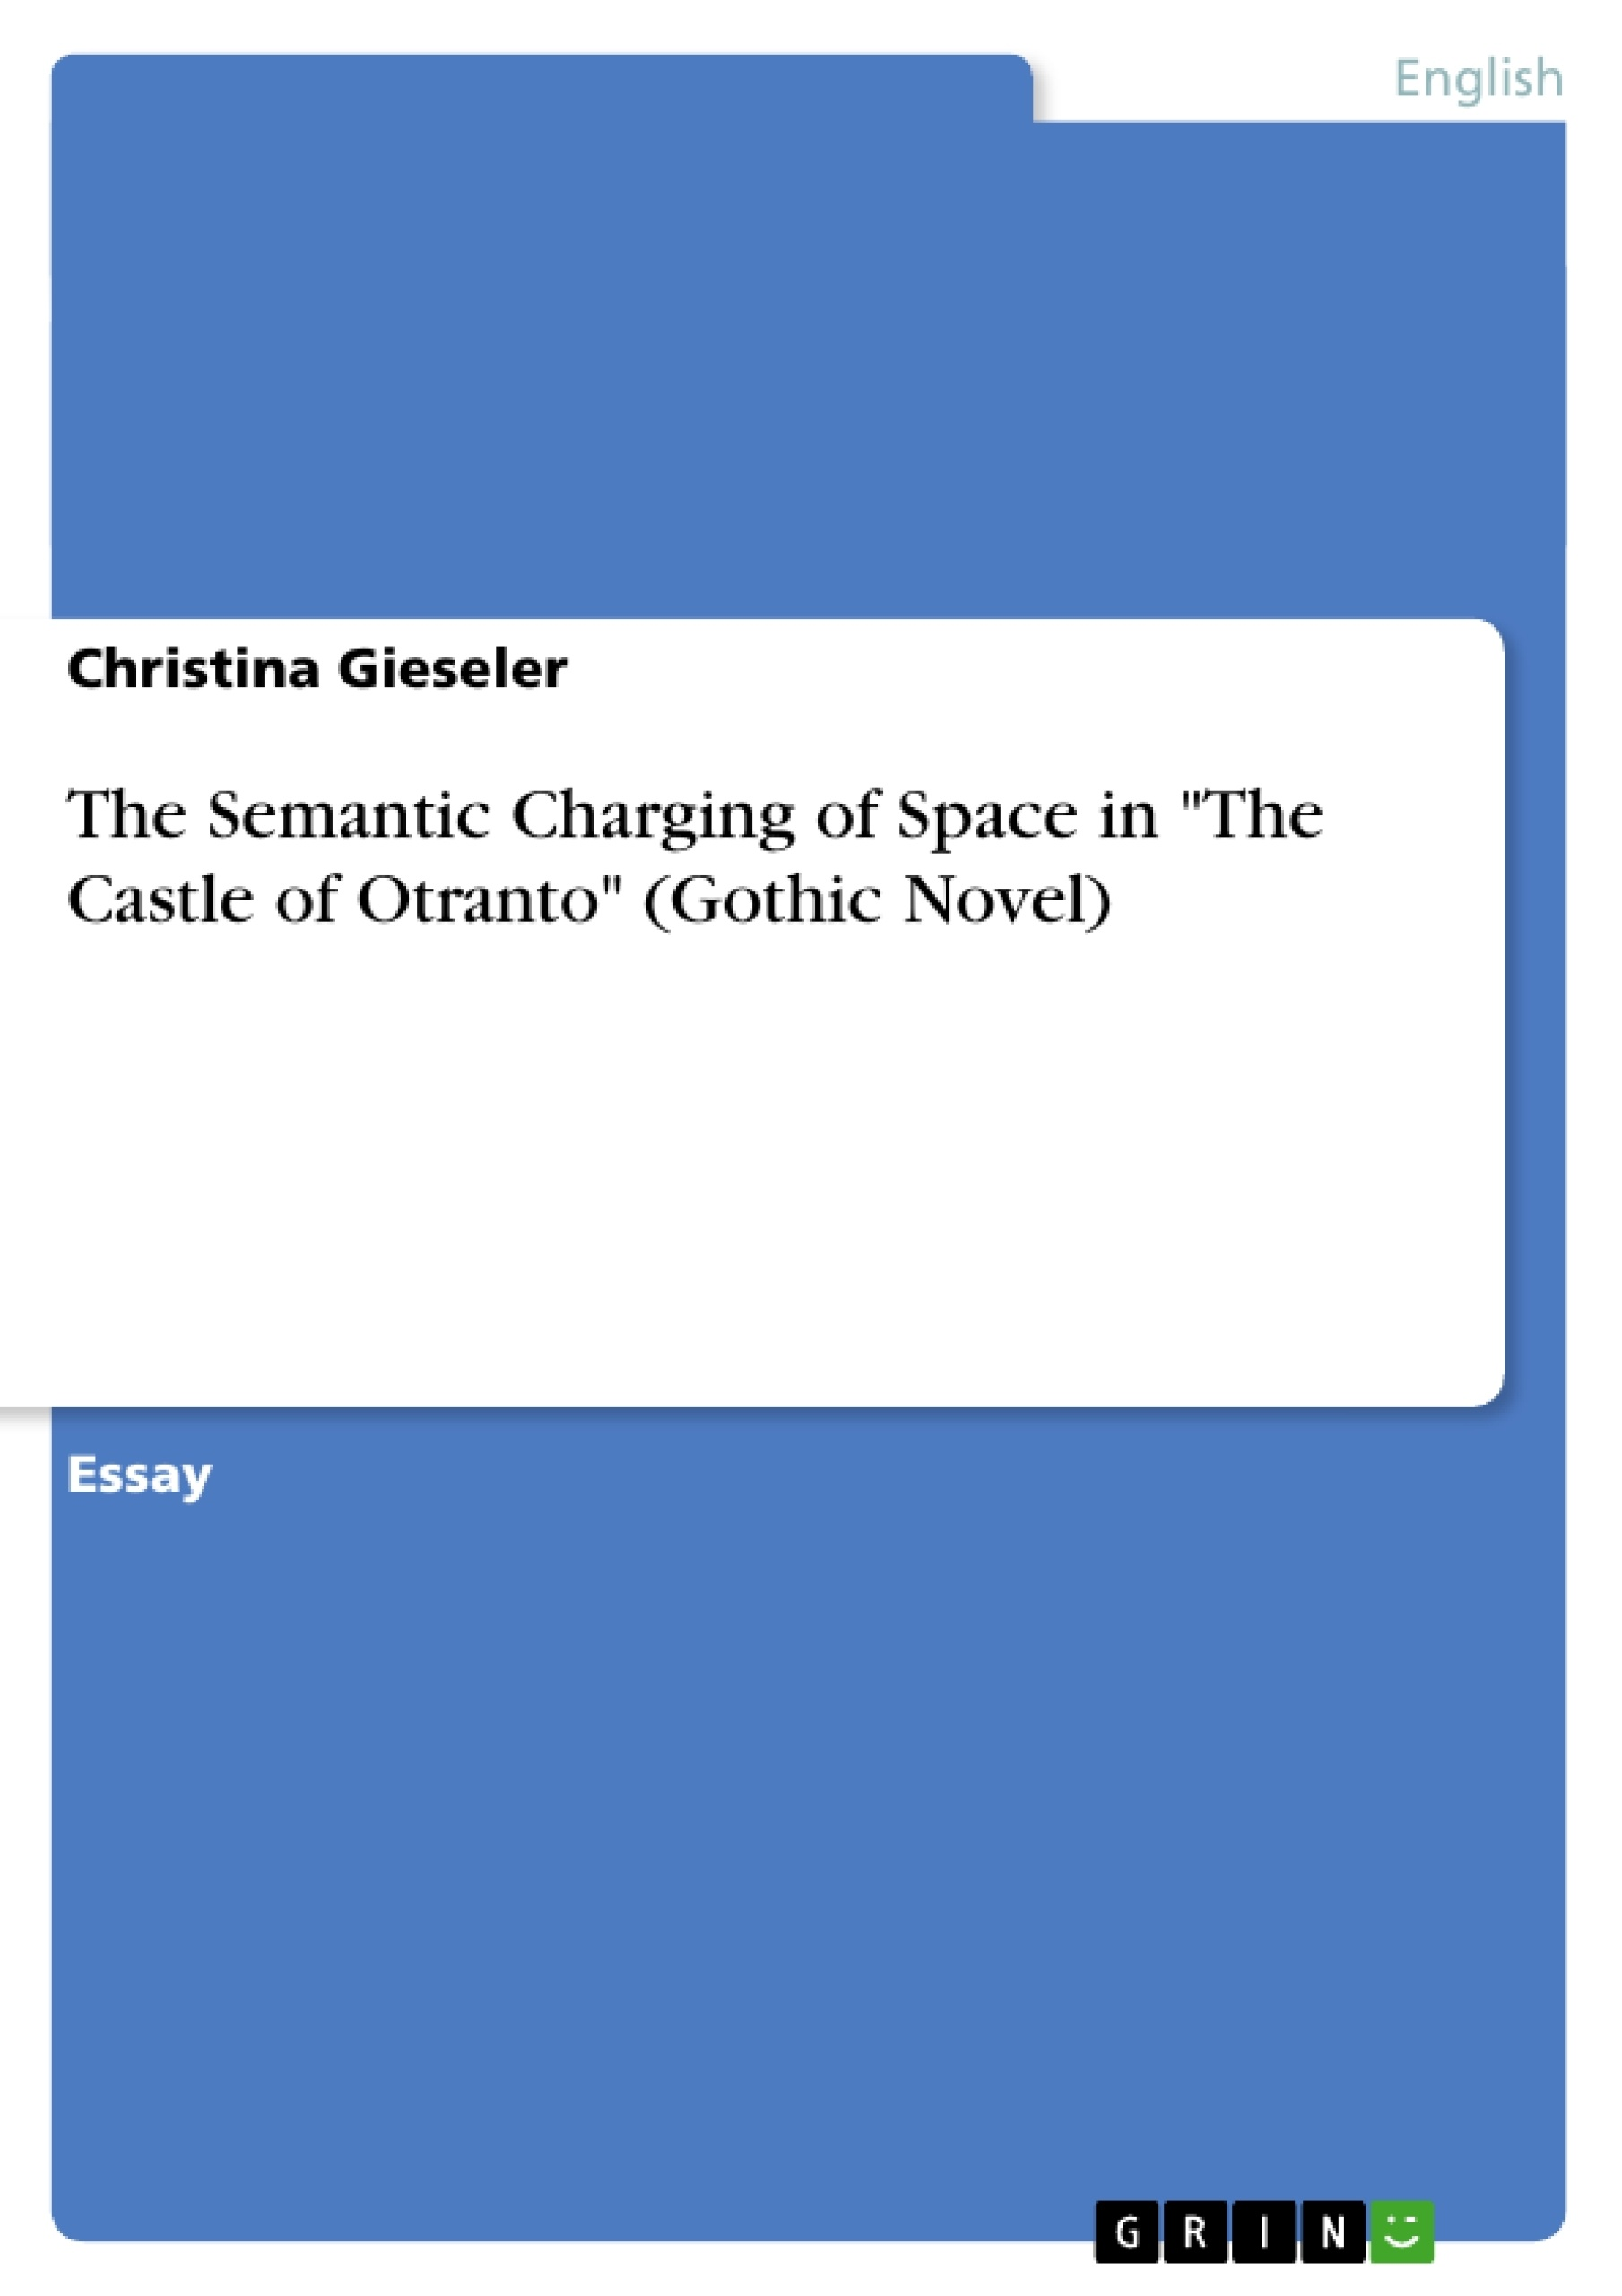 The Semantic Charging Of Space In The Castle Of Otranto Gothic  Upload Your Own Papers Earn Money And Win An Iphone X